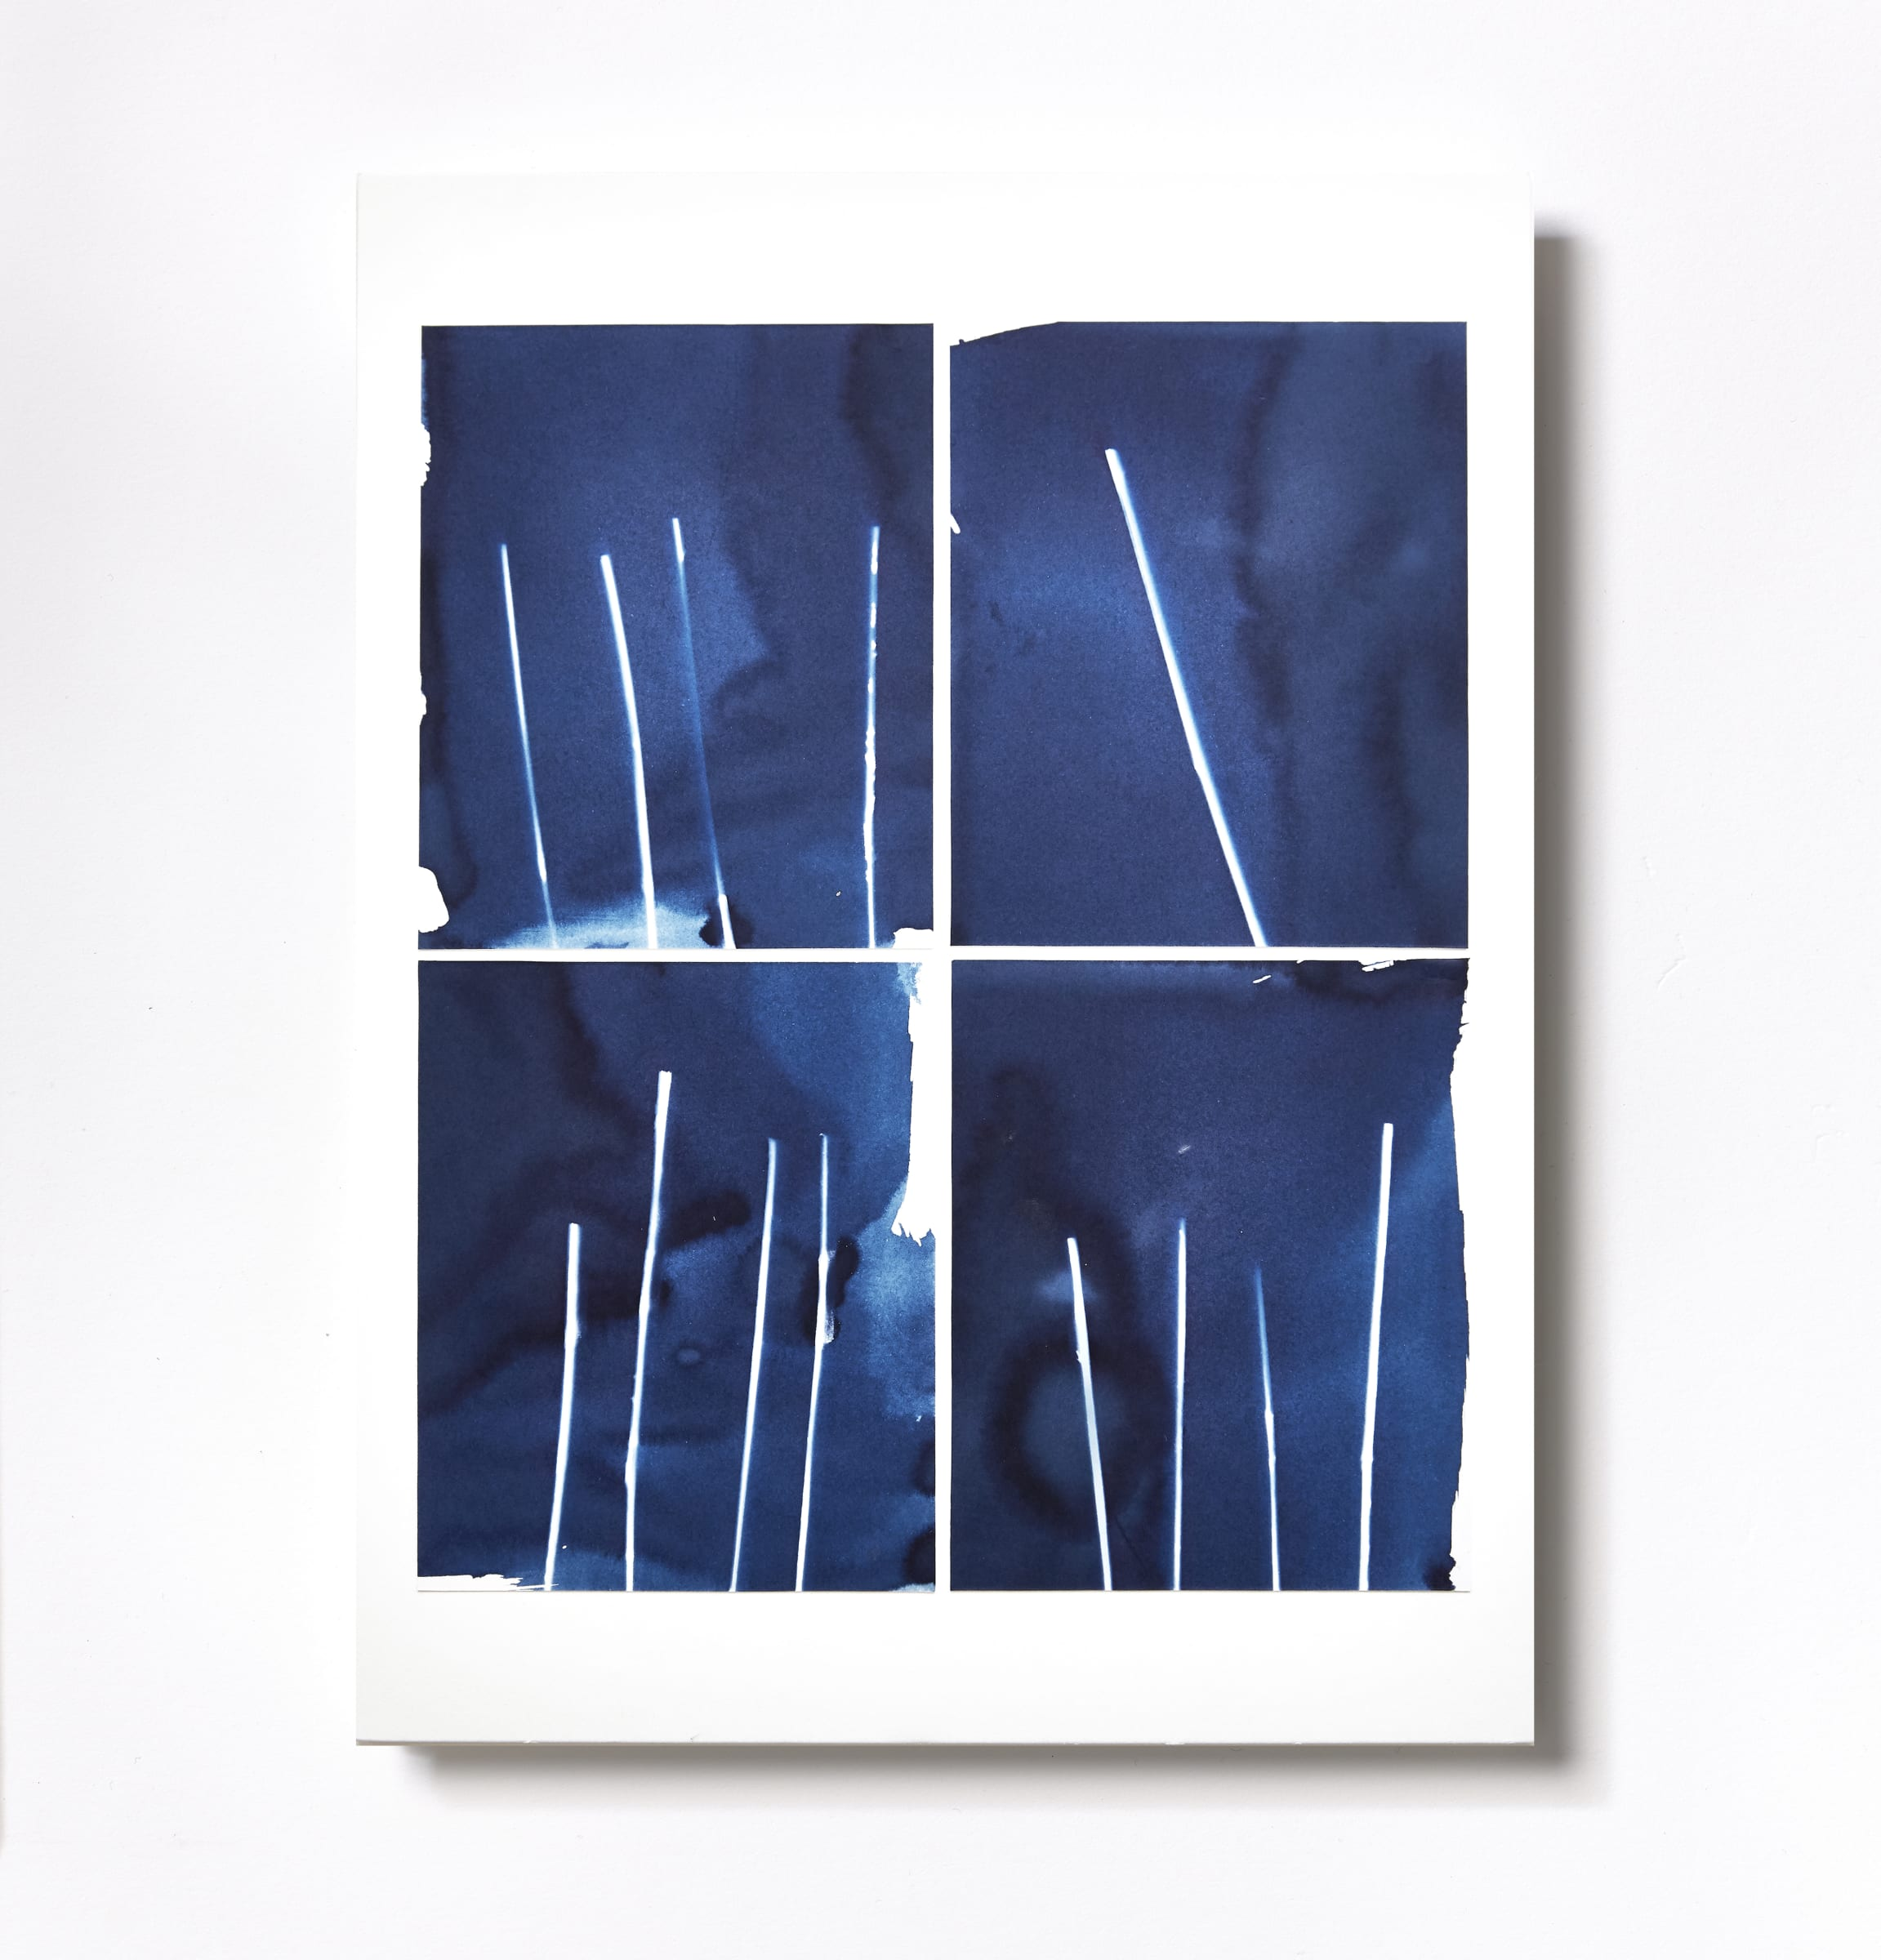 "<span class=""link fancybox-details-link""><a href=""/content/feature/119/artworks545/"">View Detail Page</a></span><div class=""medium"">Cyanotype Collage of four hand-painted 5"" x 4"" cyanotype photograms on a 12 x 9 inch 8-ply museum board.<br /> Print only<br /> Unique</div> <div class=""dimensions"">30.5 x 22.9 cm<br /> 12 x 9 in</div>"